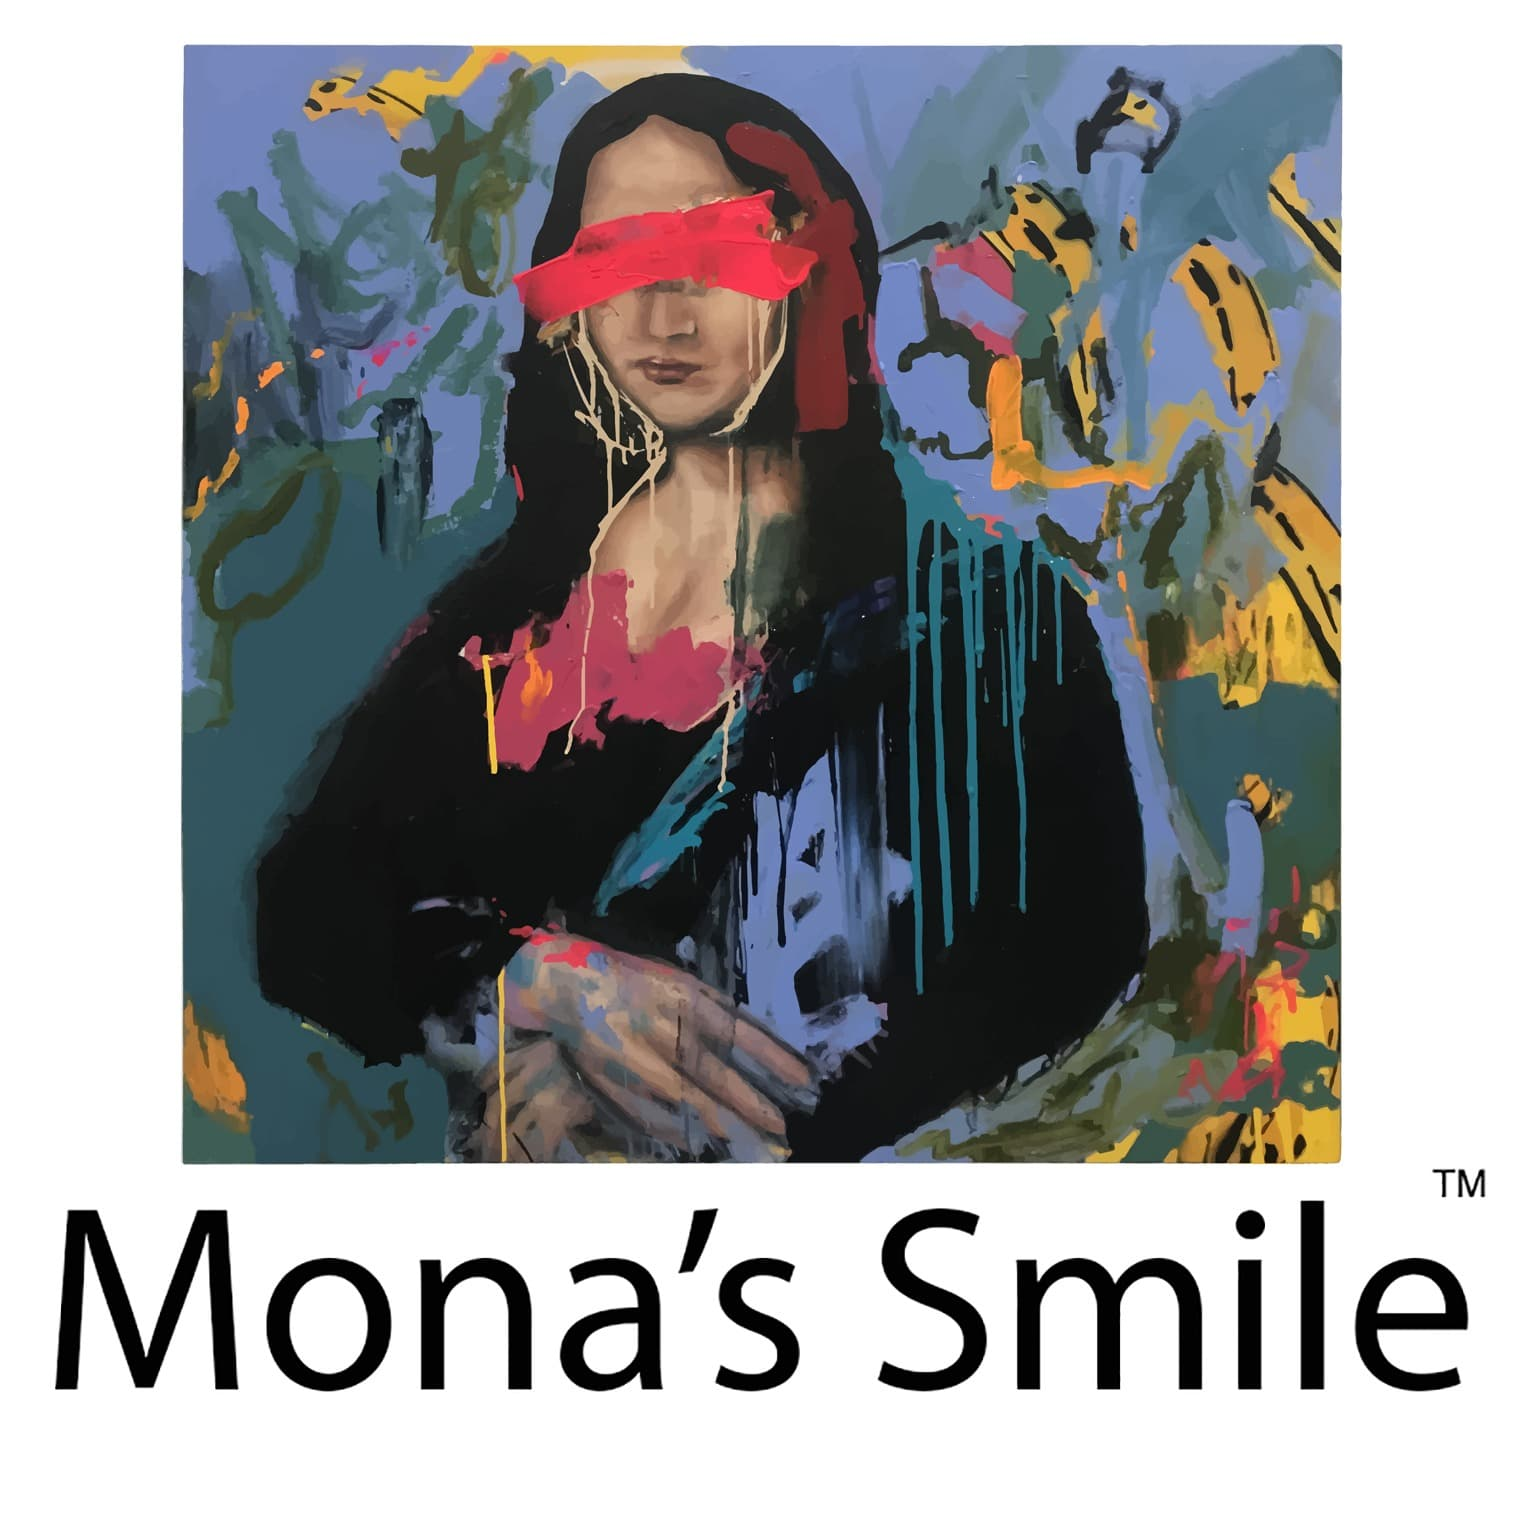 Mona's Smile Trade Mark